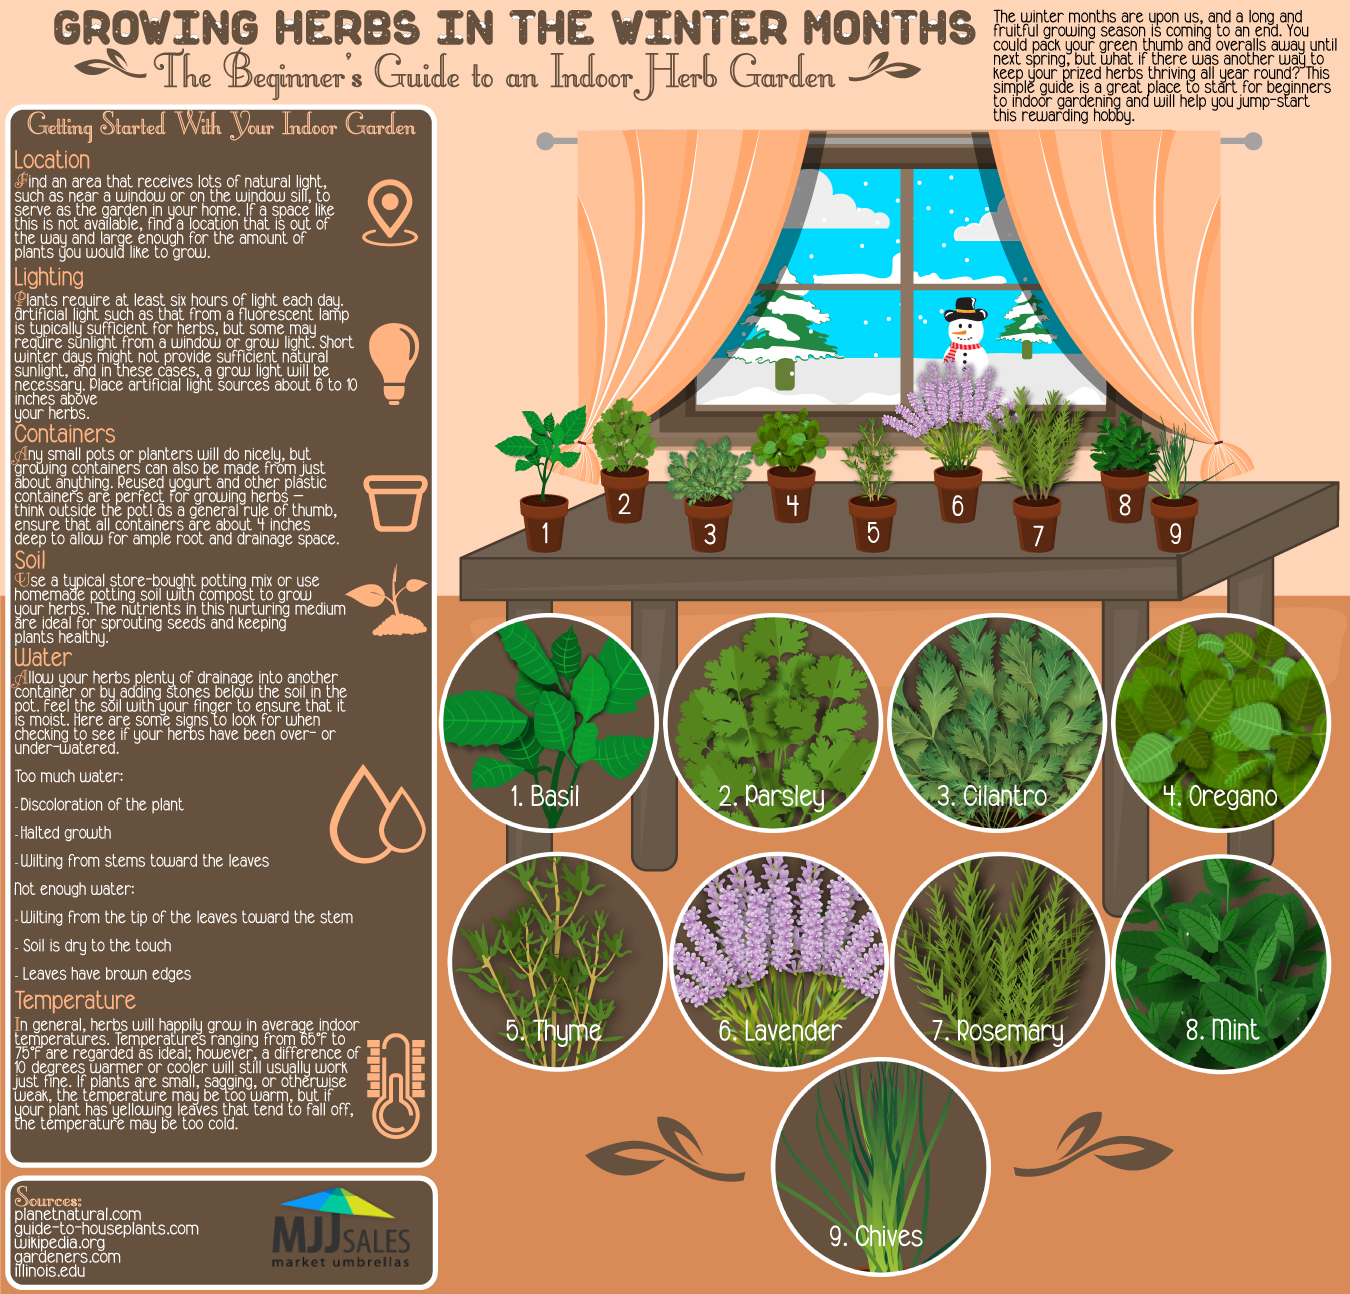 growing-herbs-in-the-winter-months_565c849fdfdbb